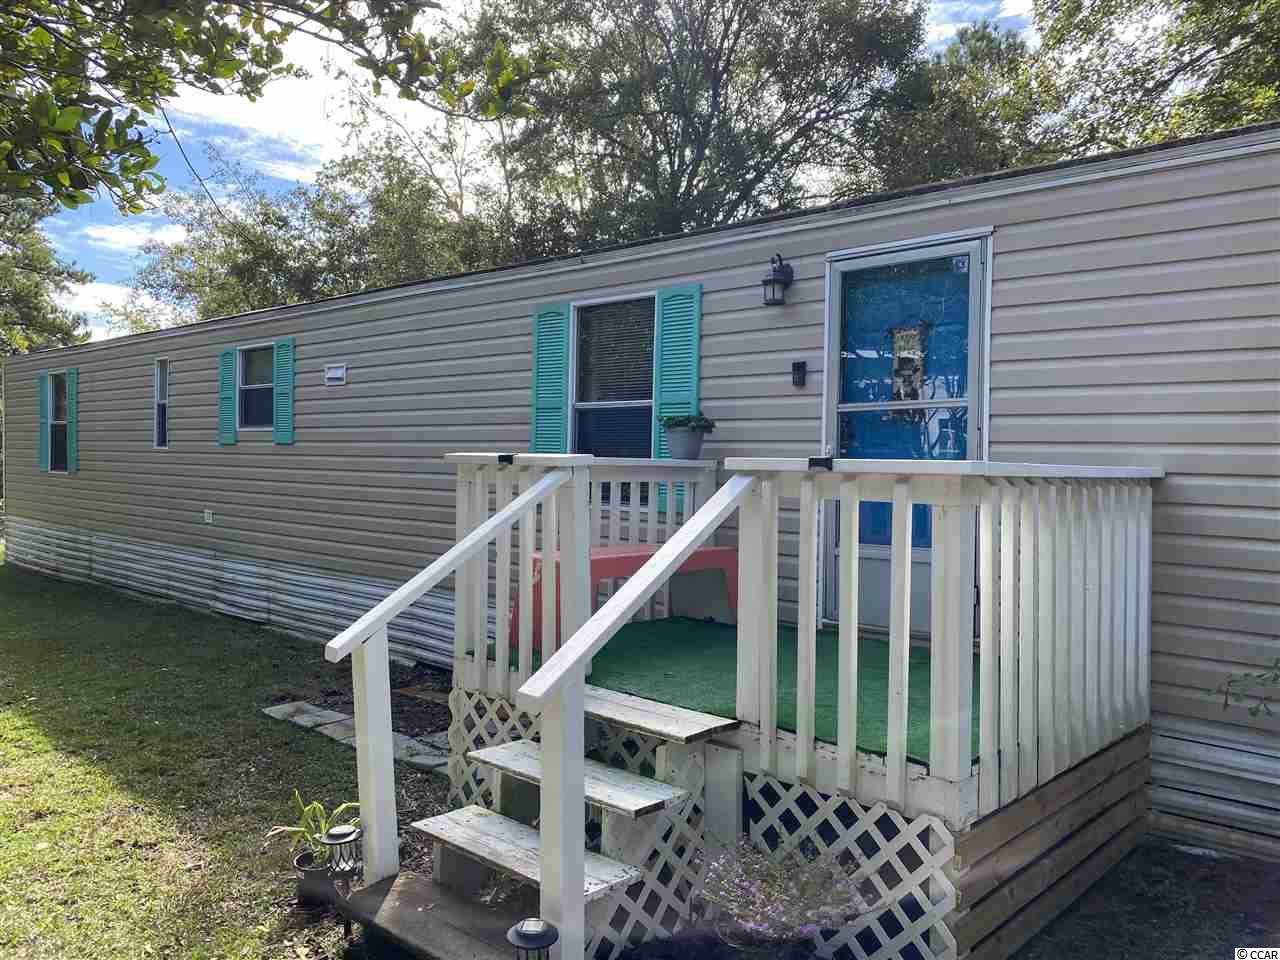 This is a must see if you want part of the beach life. This 3 bedroom, 2 bath home is located just minutes away from all Murrells Inlet has to offer, including beaches, shopping, and attractions. This home features an open concept living area w/ large kitchen and working island. The split floor plan has a spacious master bedroom. All appliances including washer/dryer convey with the purchase.